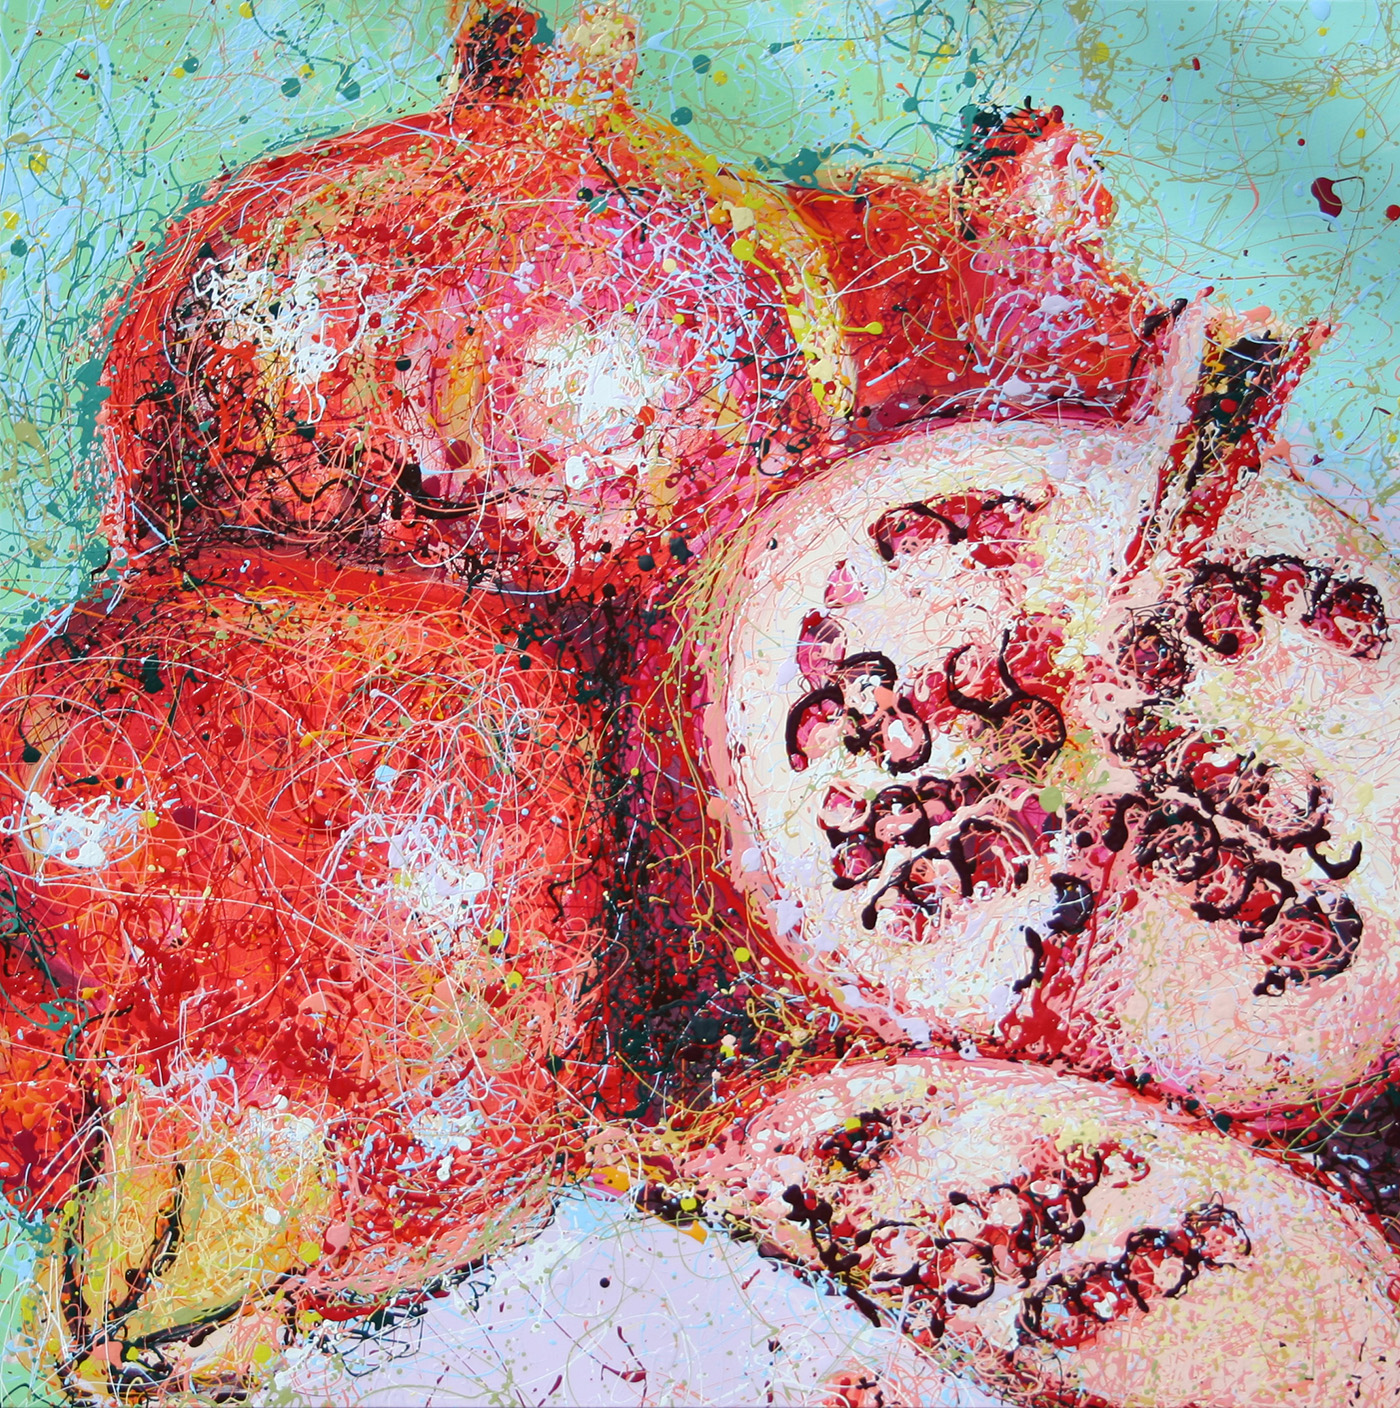 Pomegranate Latex Enamel Painting on Gallery Wrapped Canvas by Fort Collins, Colorado Artist Lisa Cameron Russell